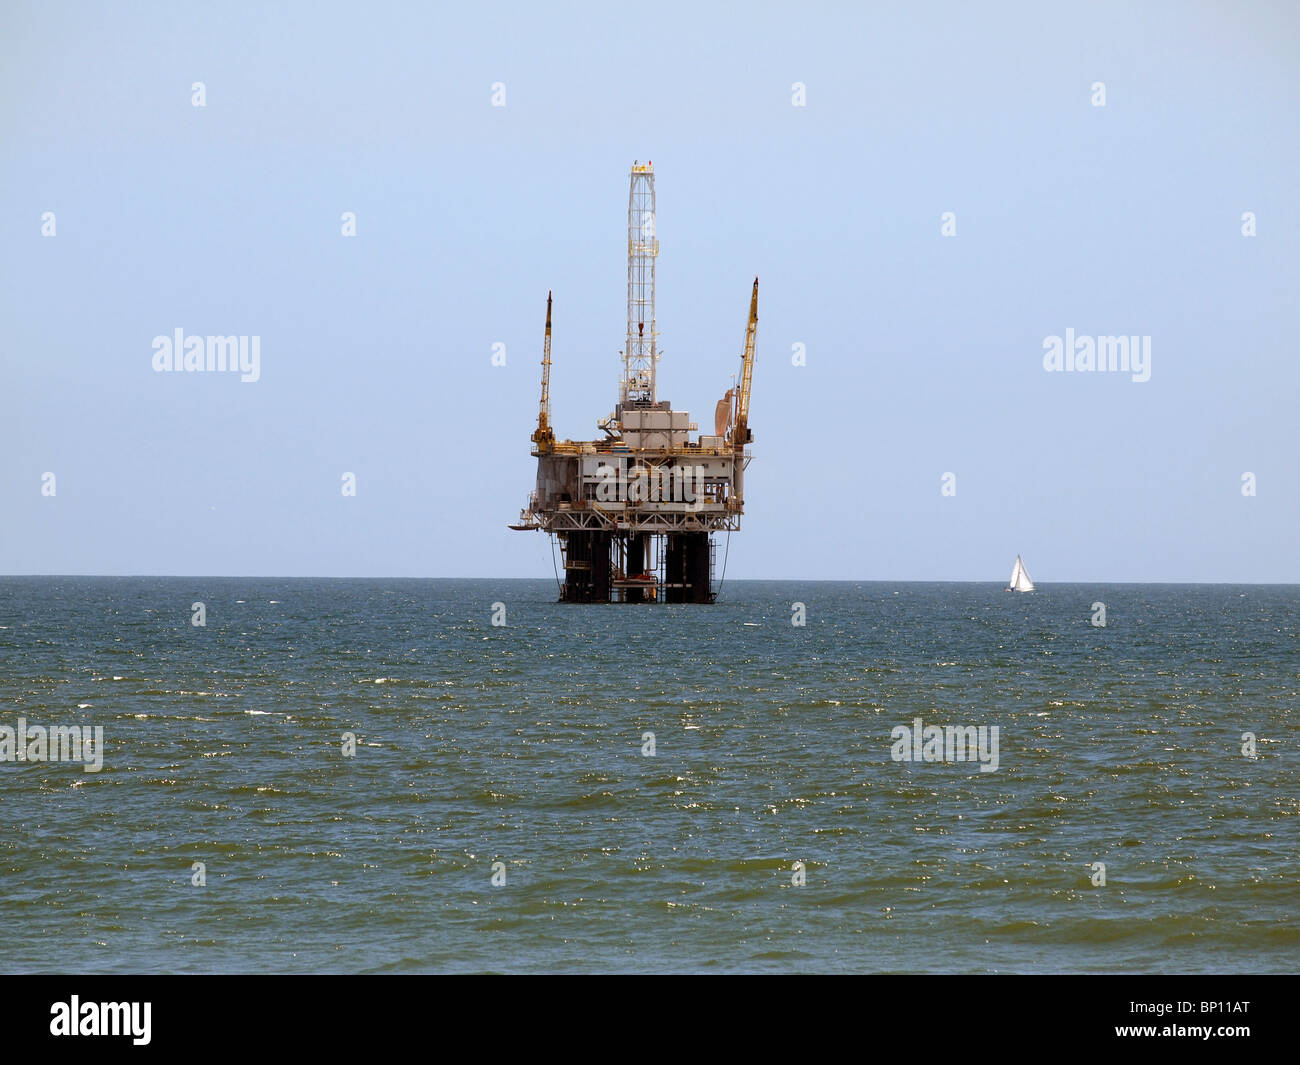 A sail boat passes a large offshore oil rig. - Stock Image